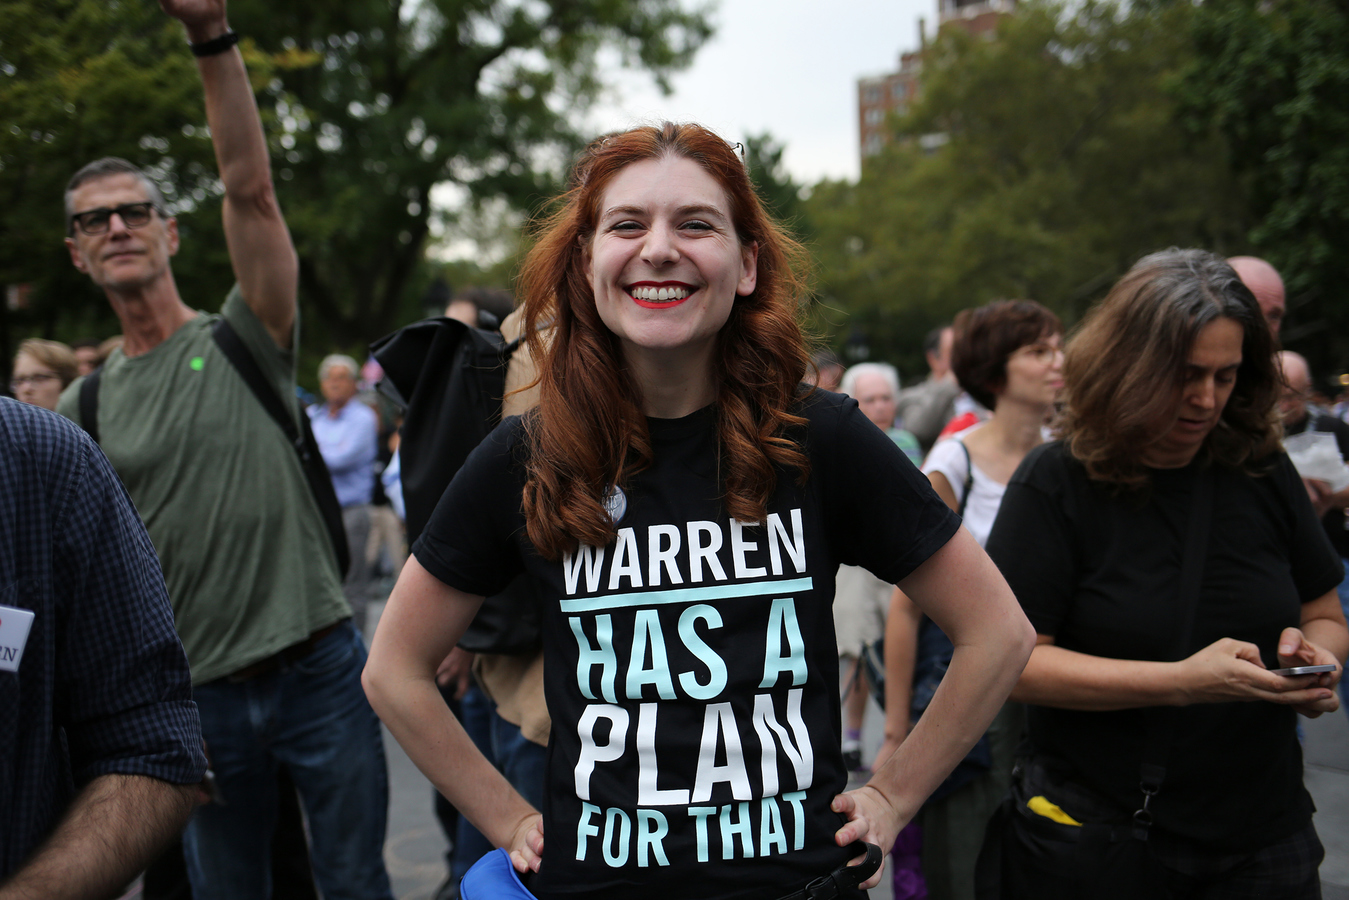 Current Project Elizabeth Warren Rally Washington Square Park 9/16/19